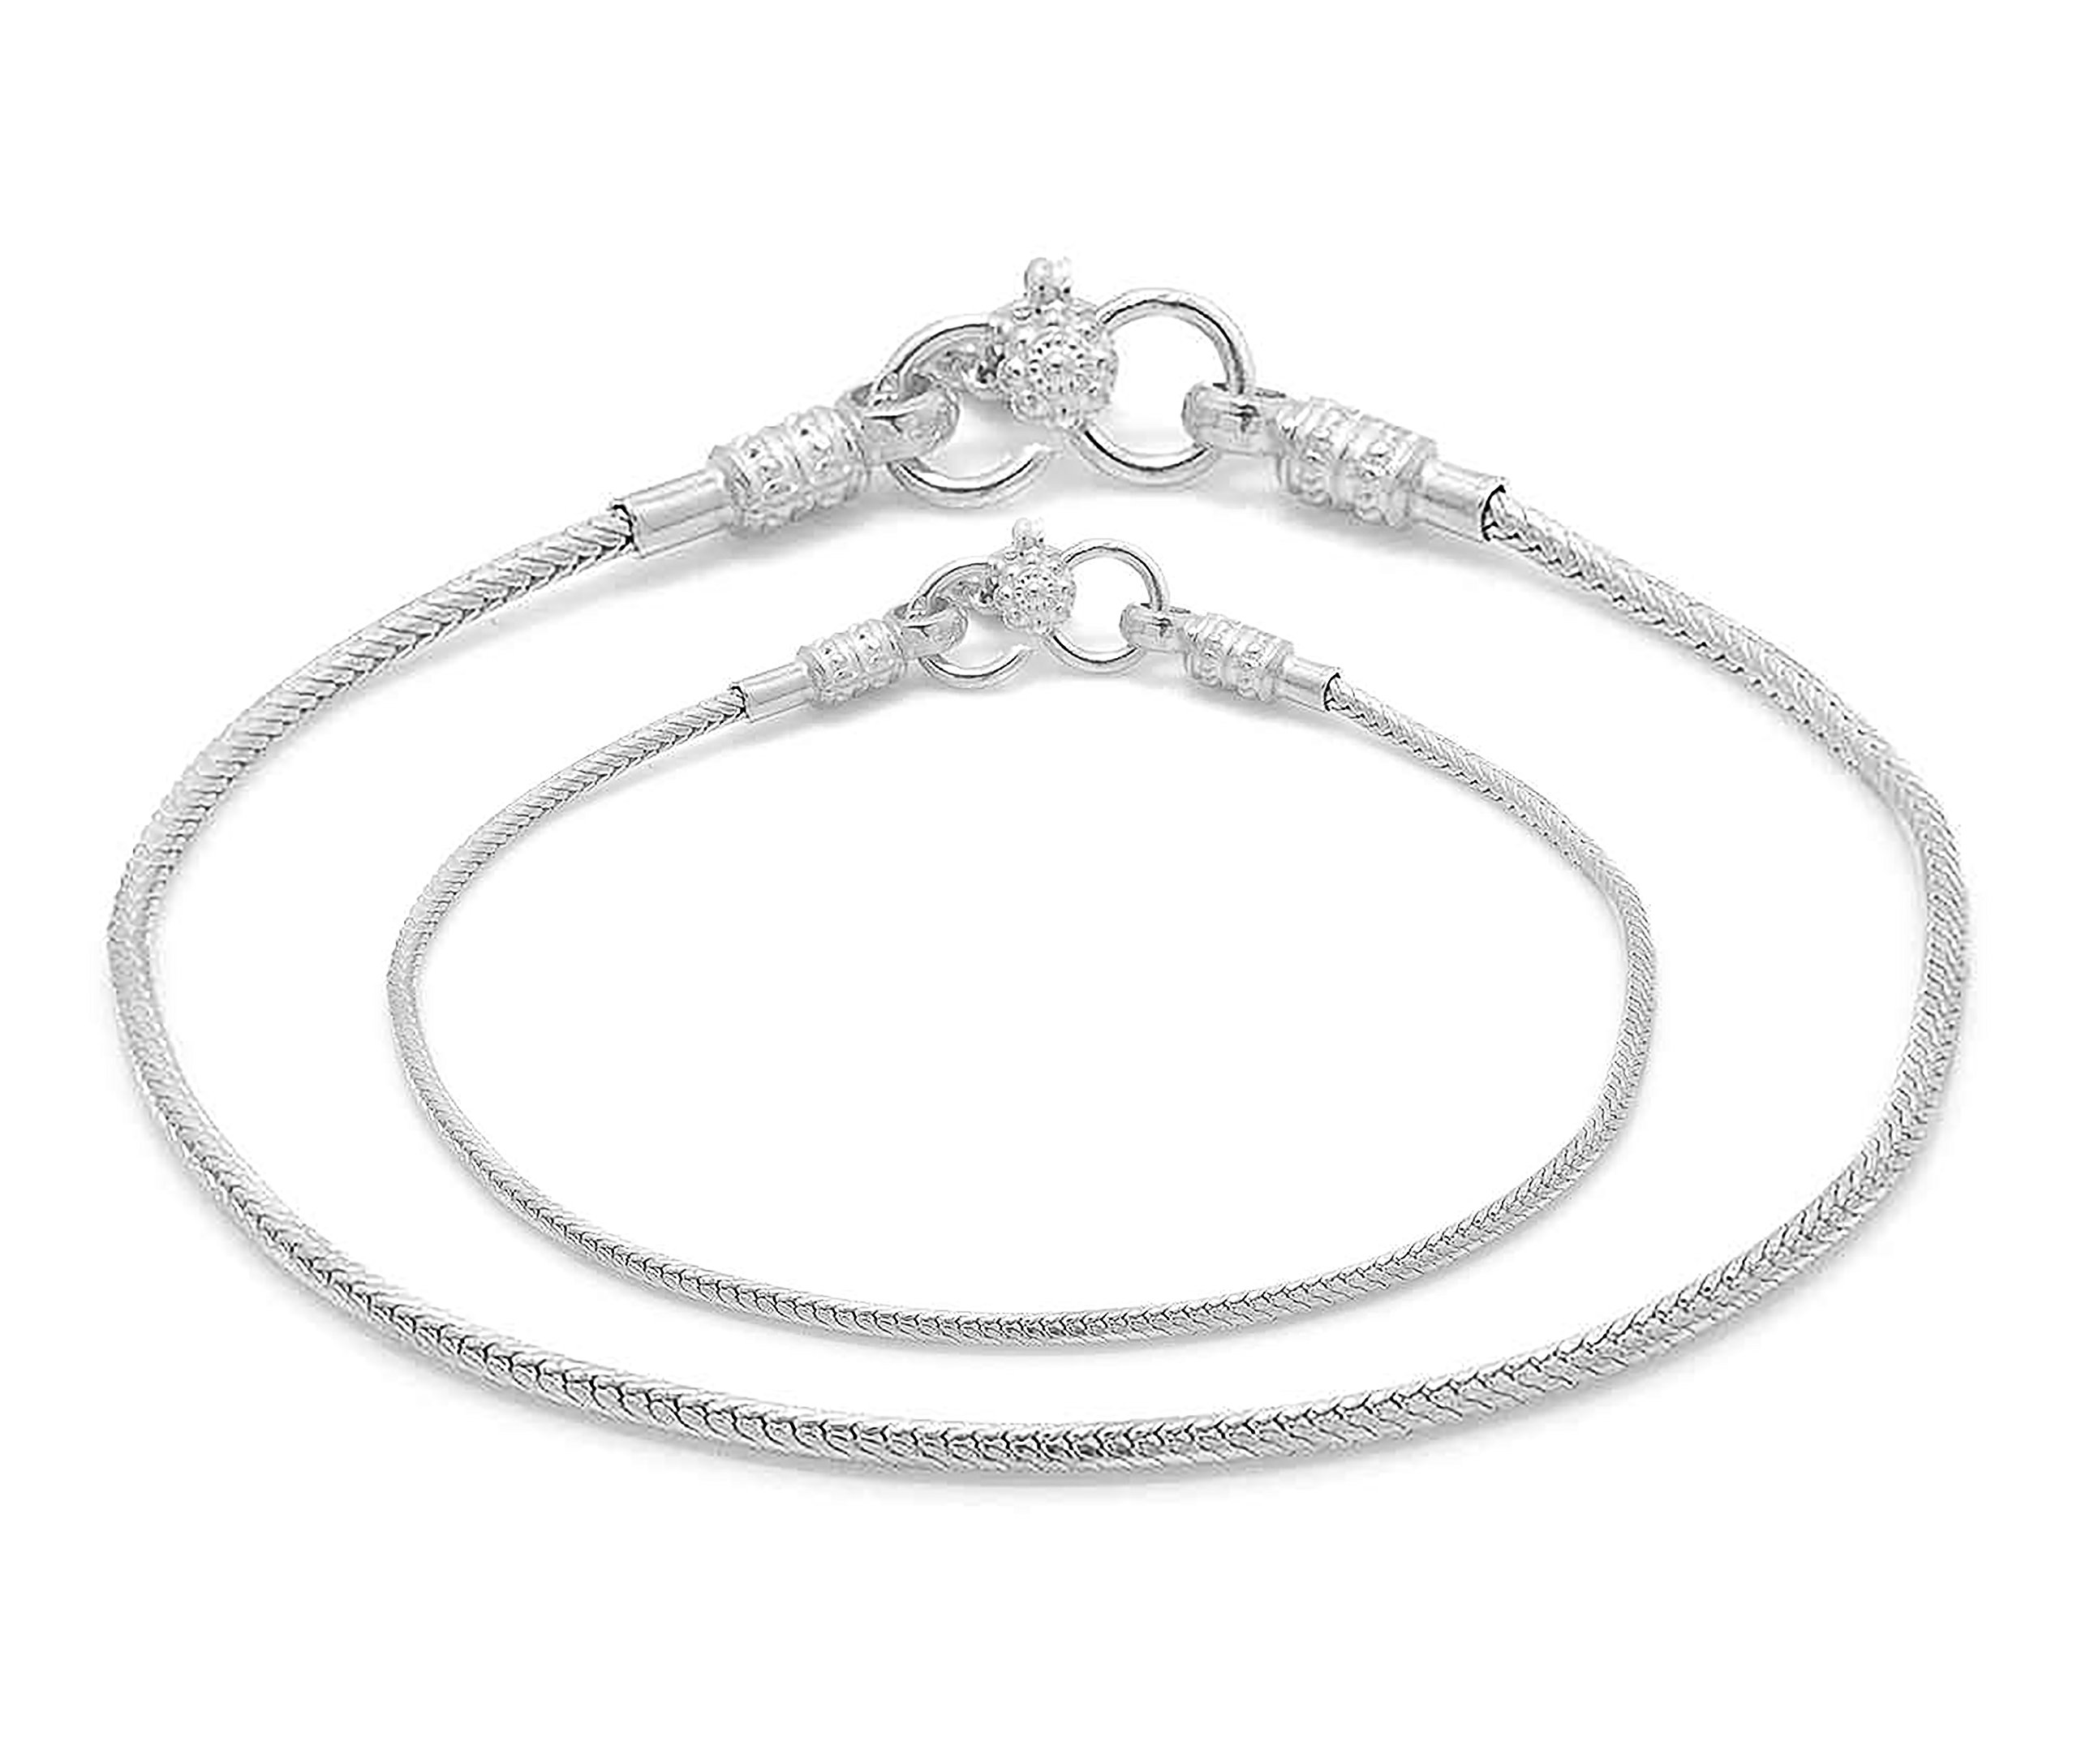 D&D Crafts Sterling Silver Anklets For Girls, Women